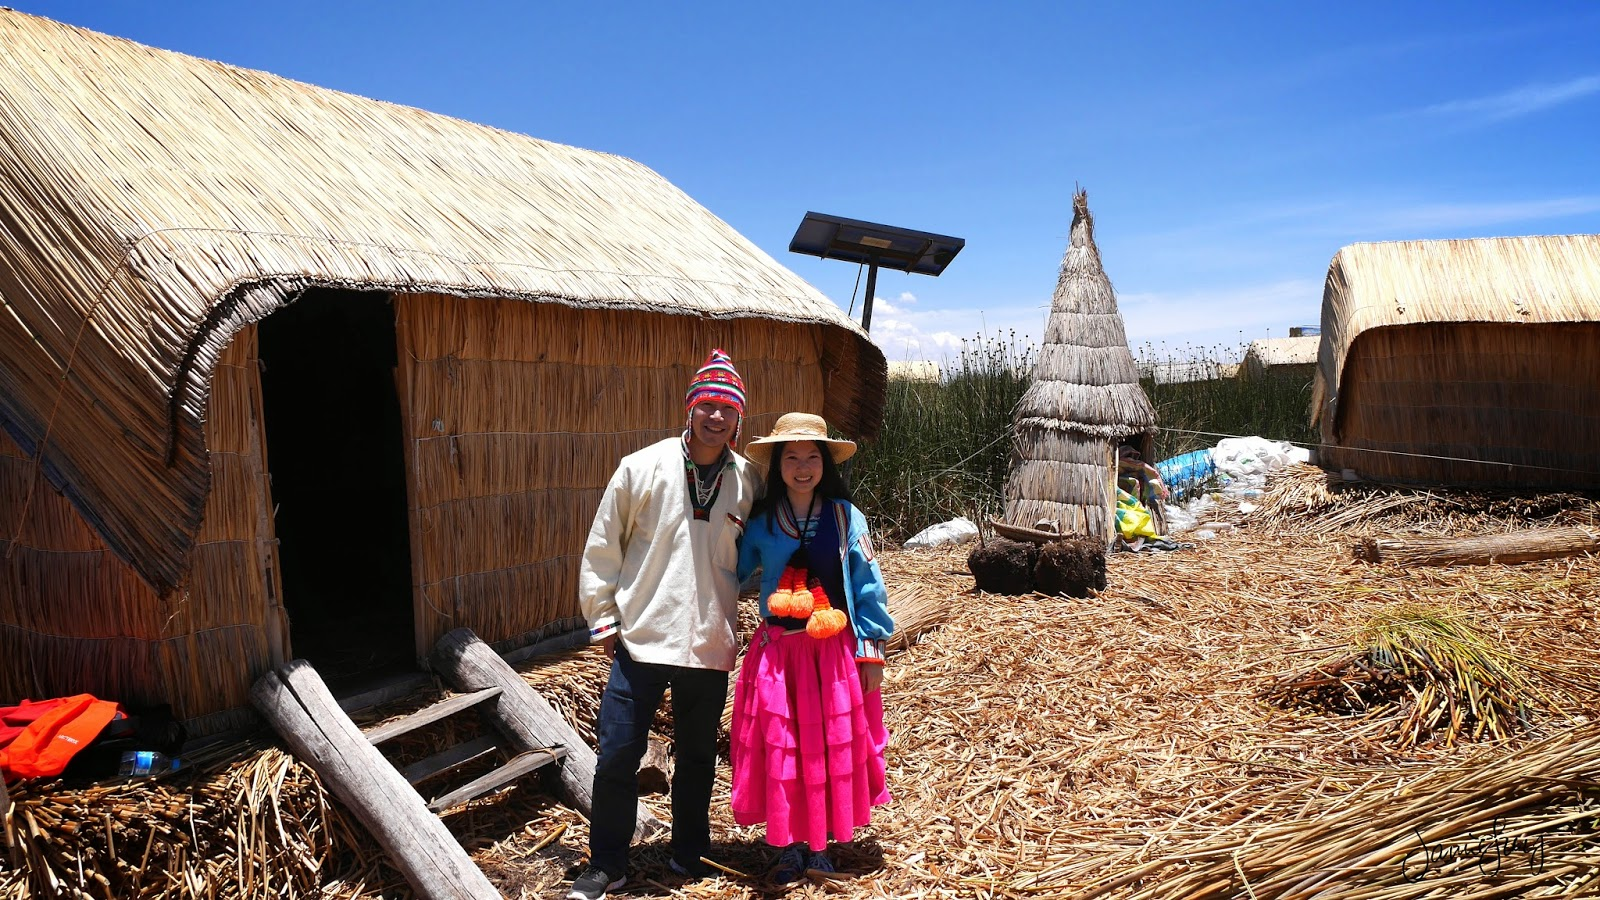 Wearing a Costume, Floating Islands of Uros, Lake Titicaca, Peru